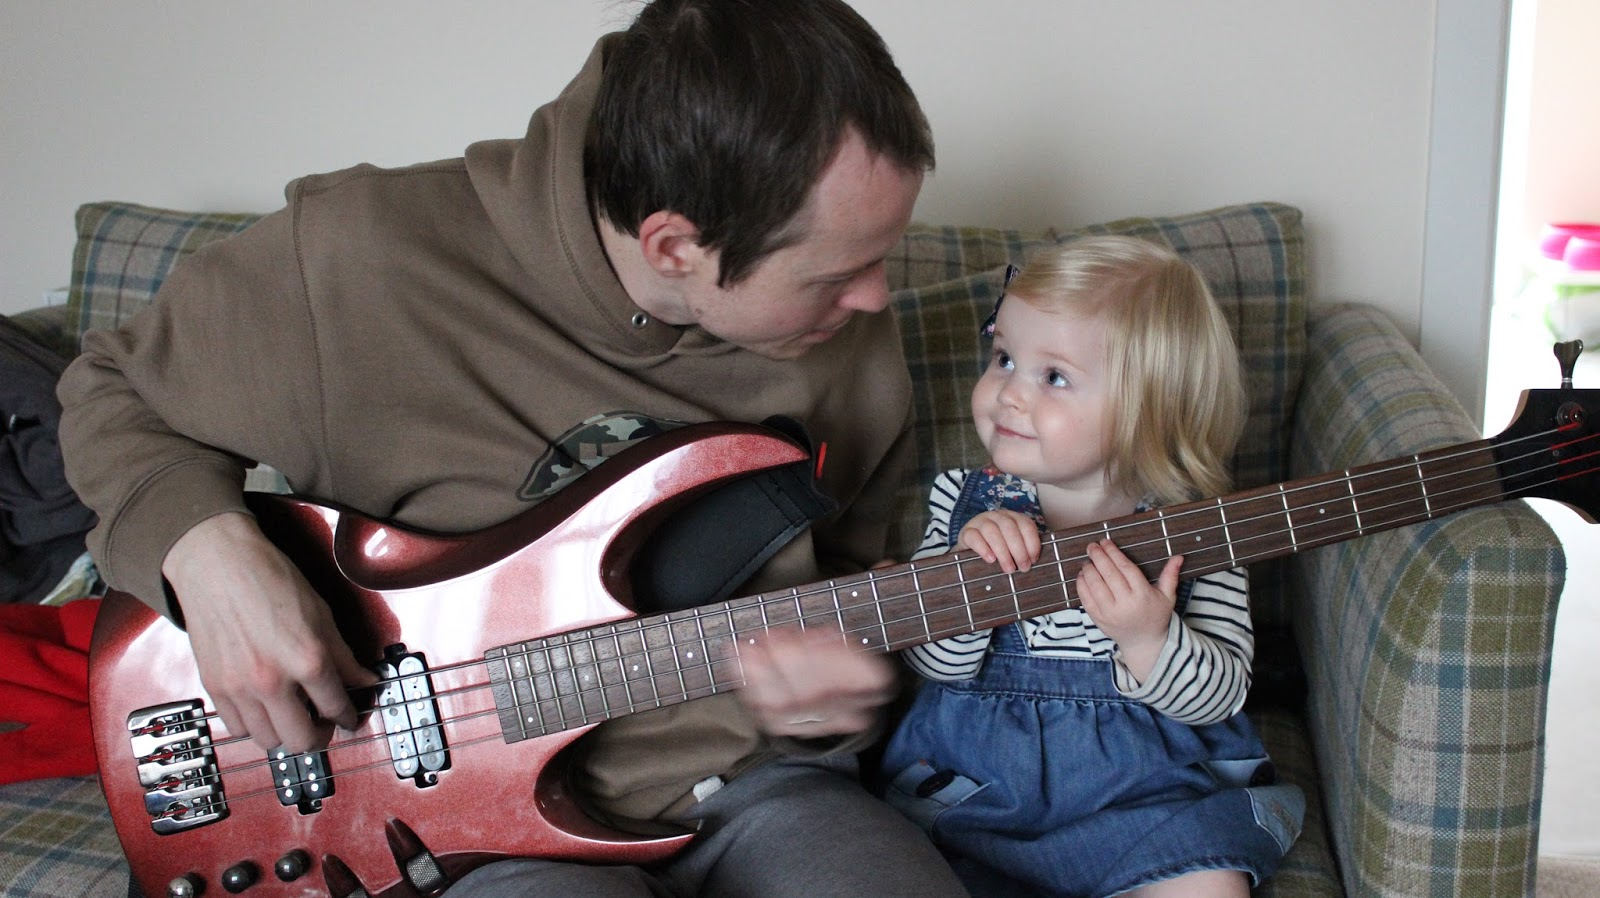 my husband sat on the sofa with my two year old. They are both holding onto my husbands burgundy coloured bass guitar and smiling at each other.